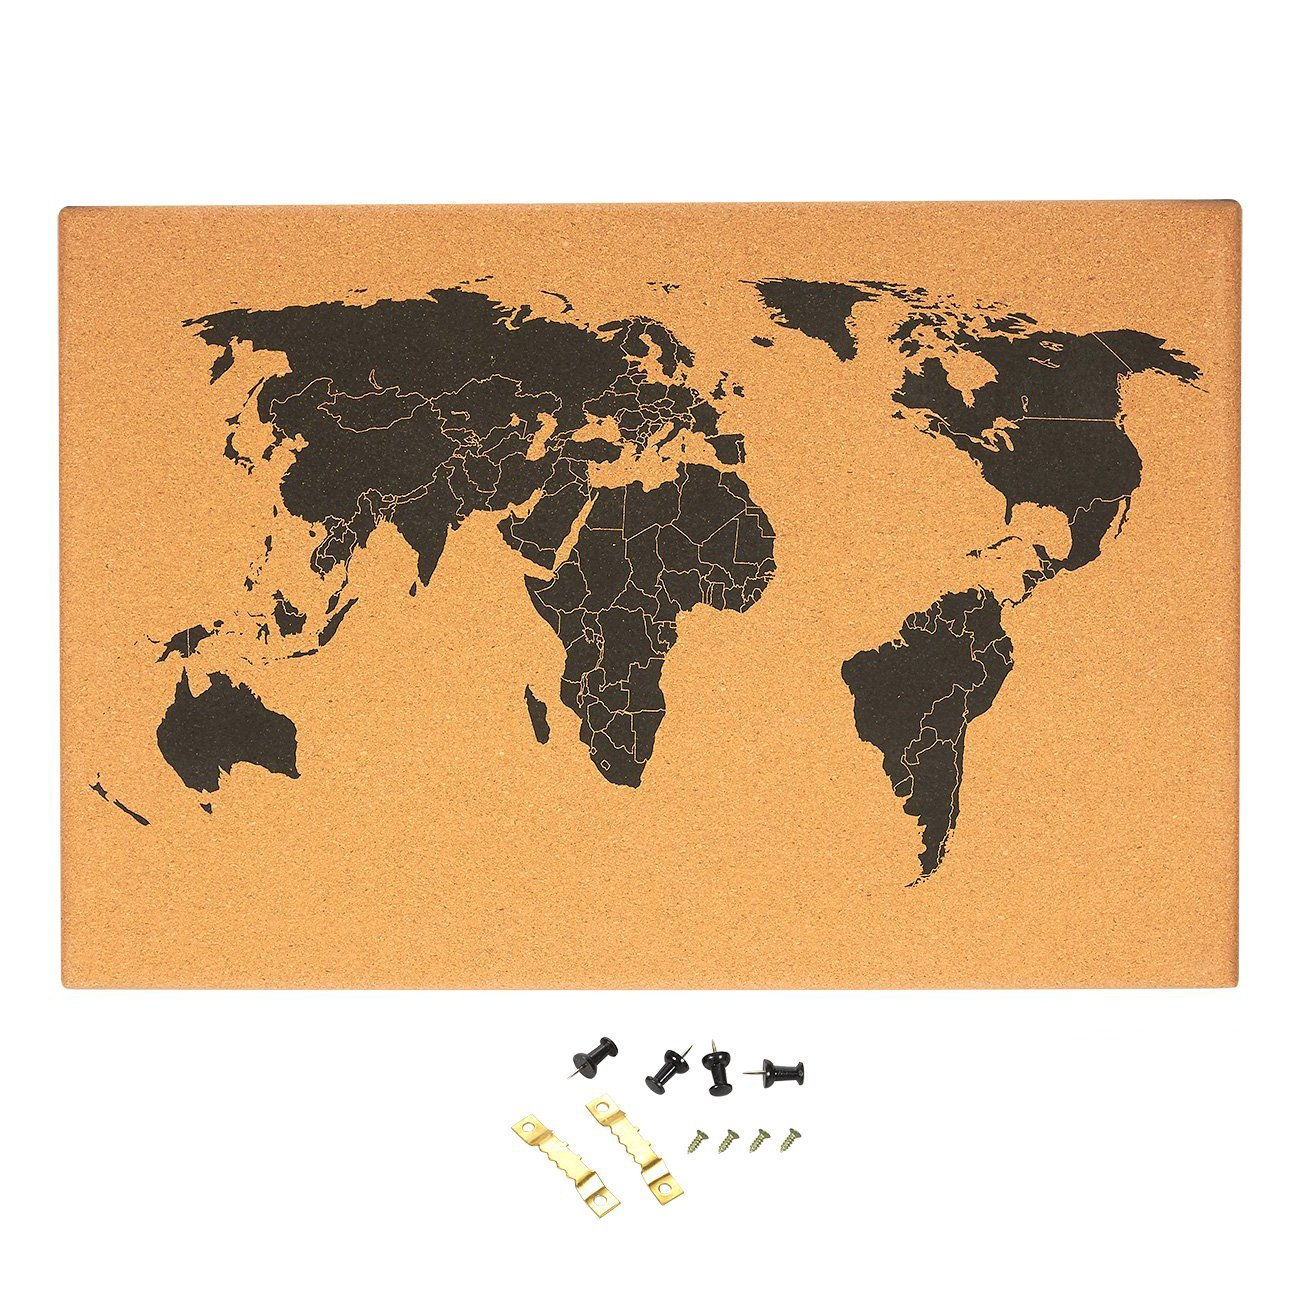 Cork board map of the world wall mount bulletin board with cork board map of the world wall mount bulletin board with detailed world map gumiabroncs